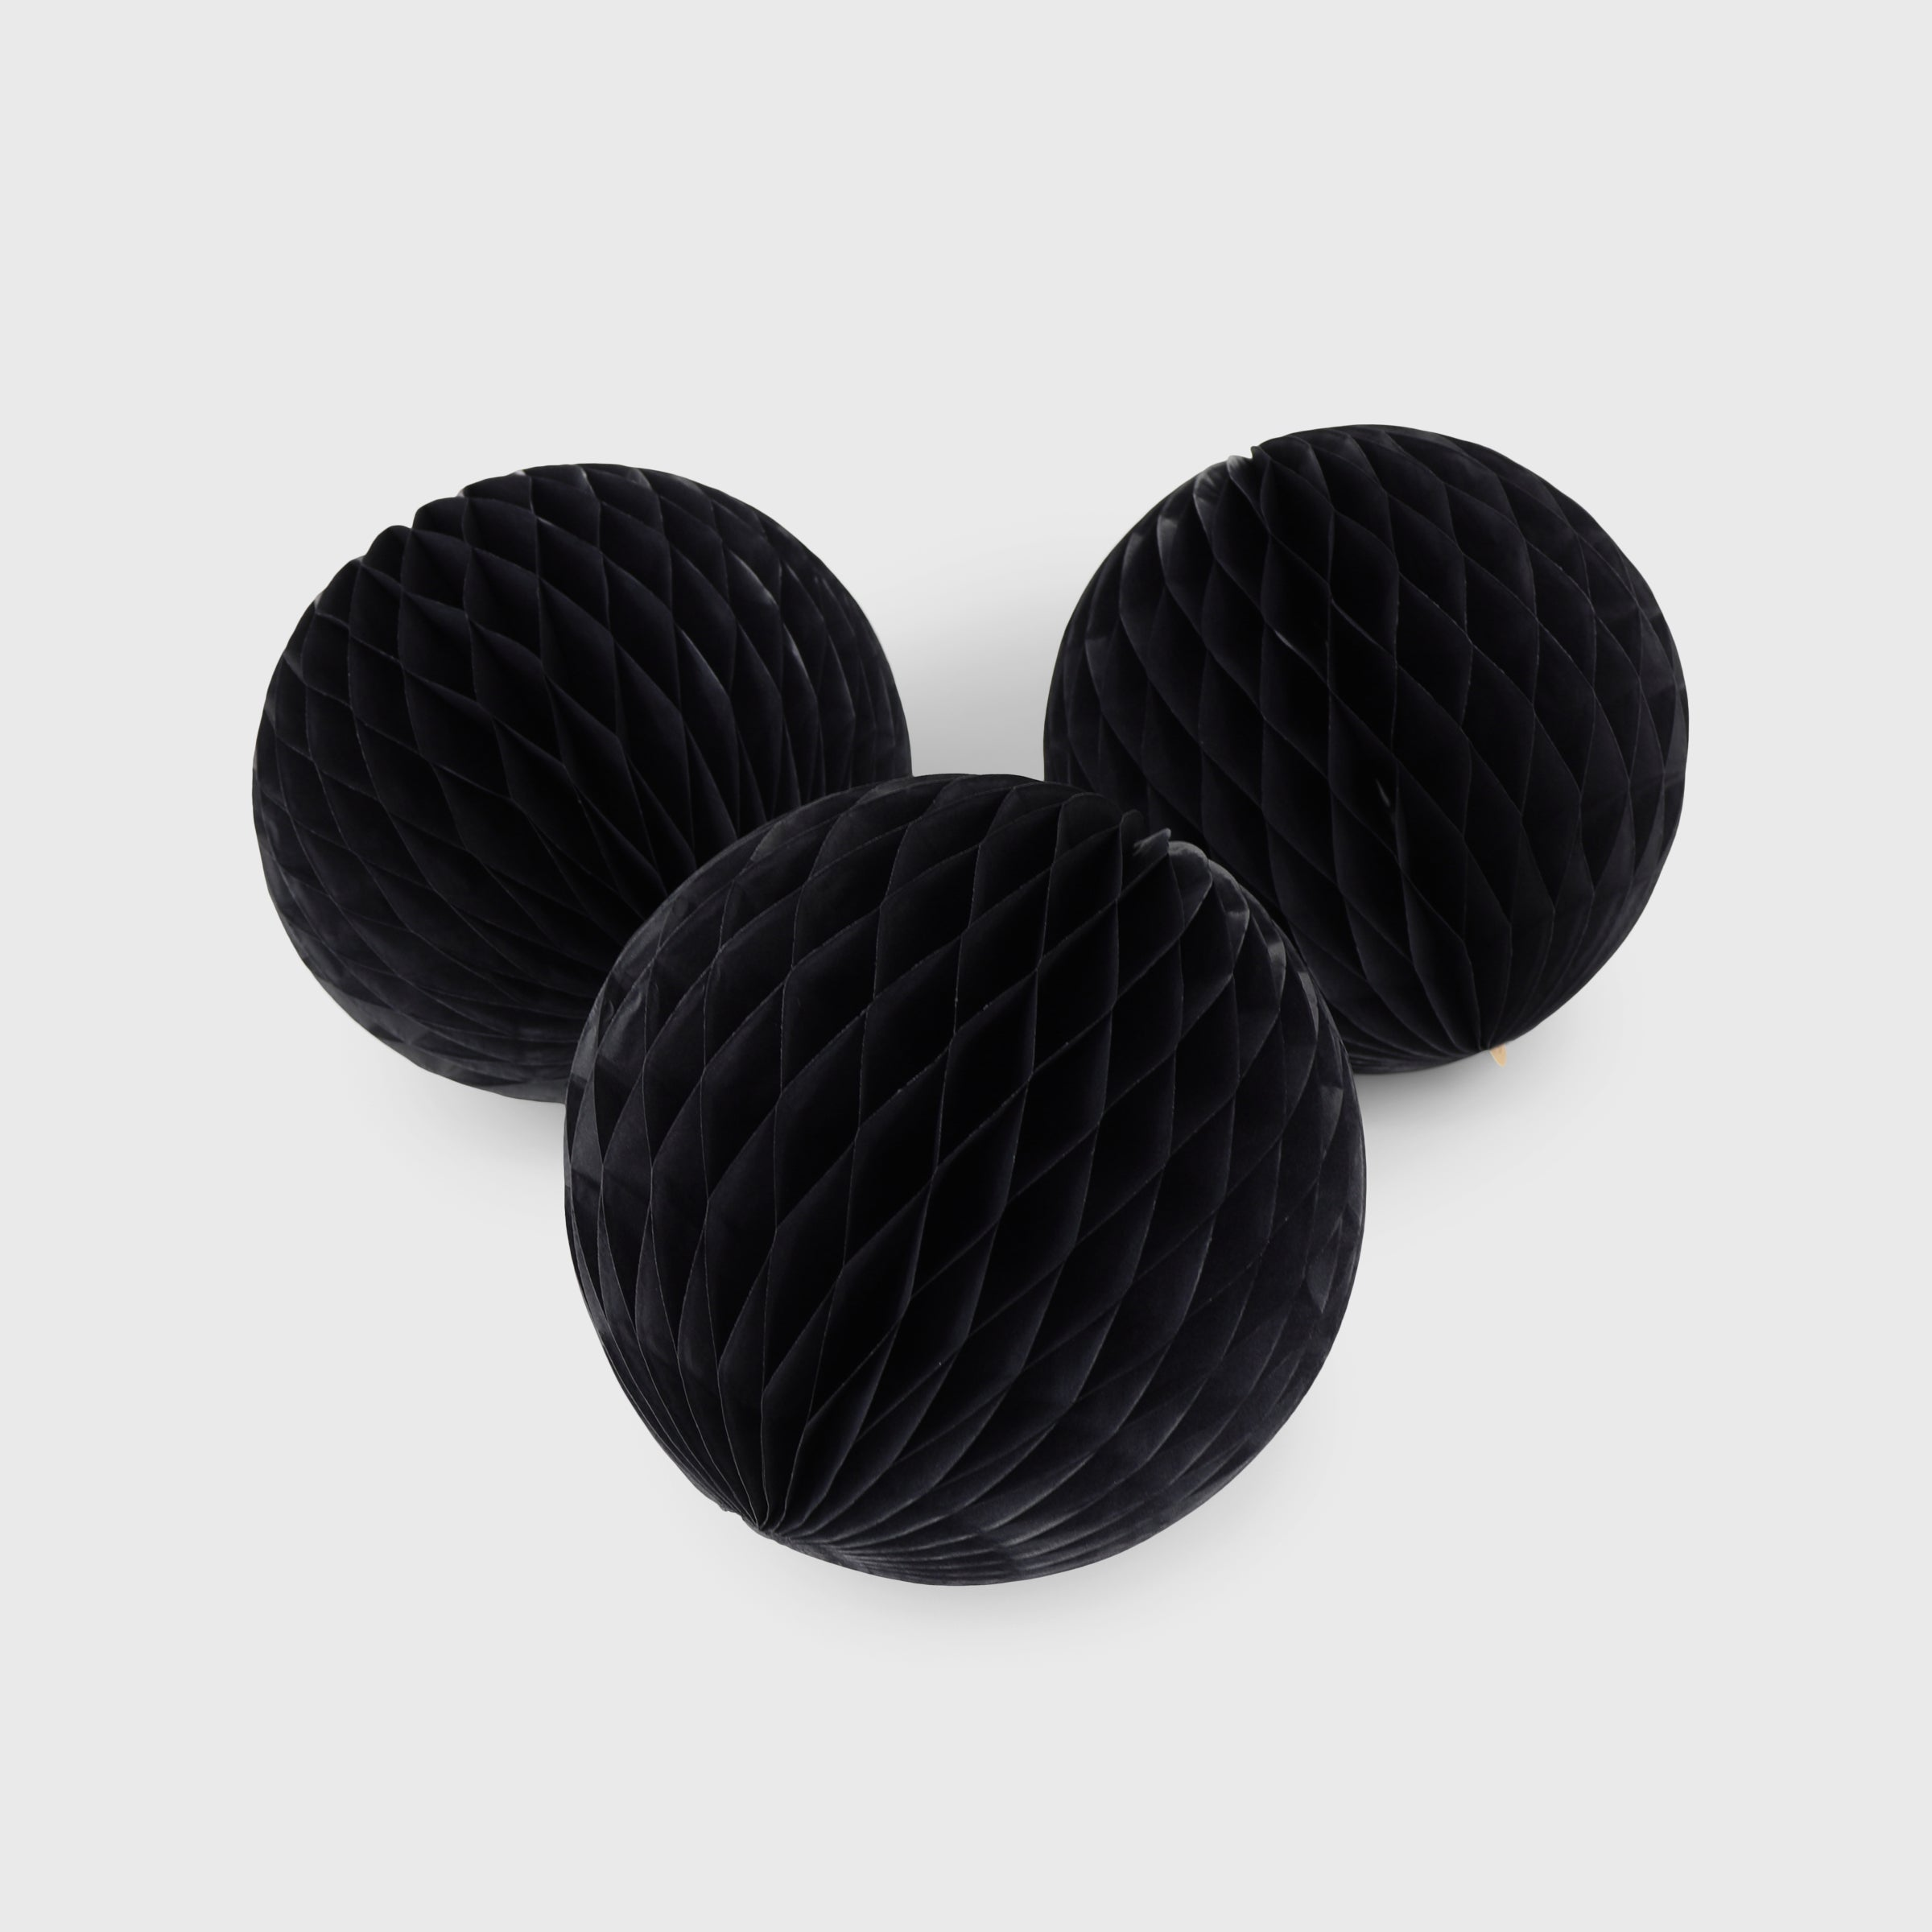 Honeycomb Ball 15cm Pack of 3, Black